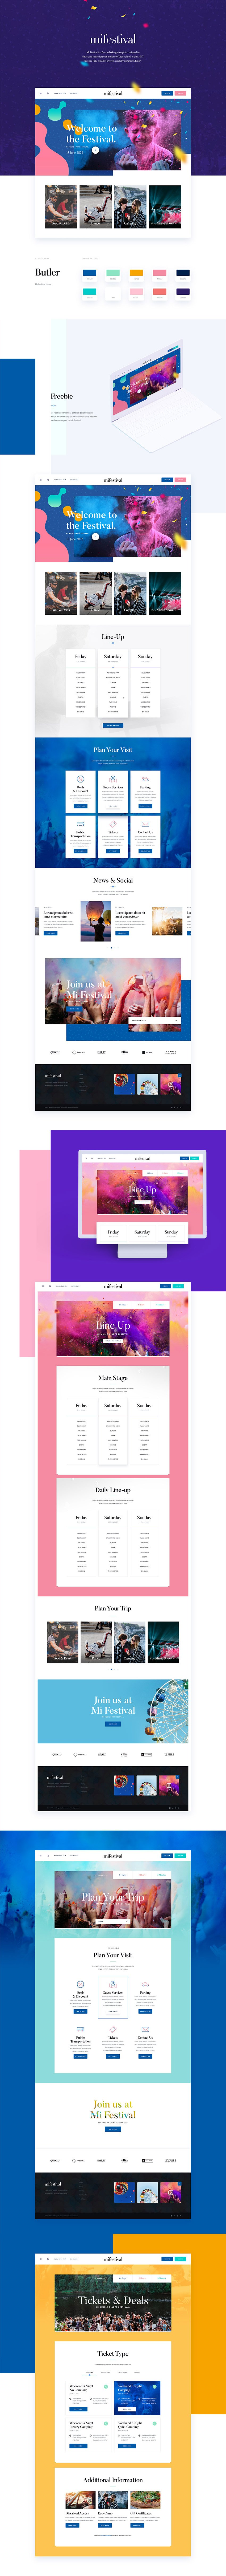 MI Festival Free Web Design Template - 7 Free Pages Inluded